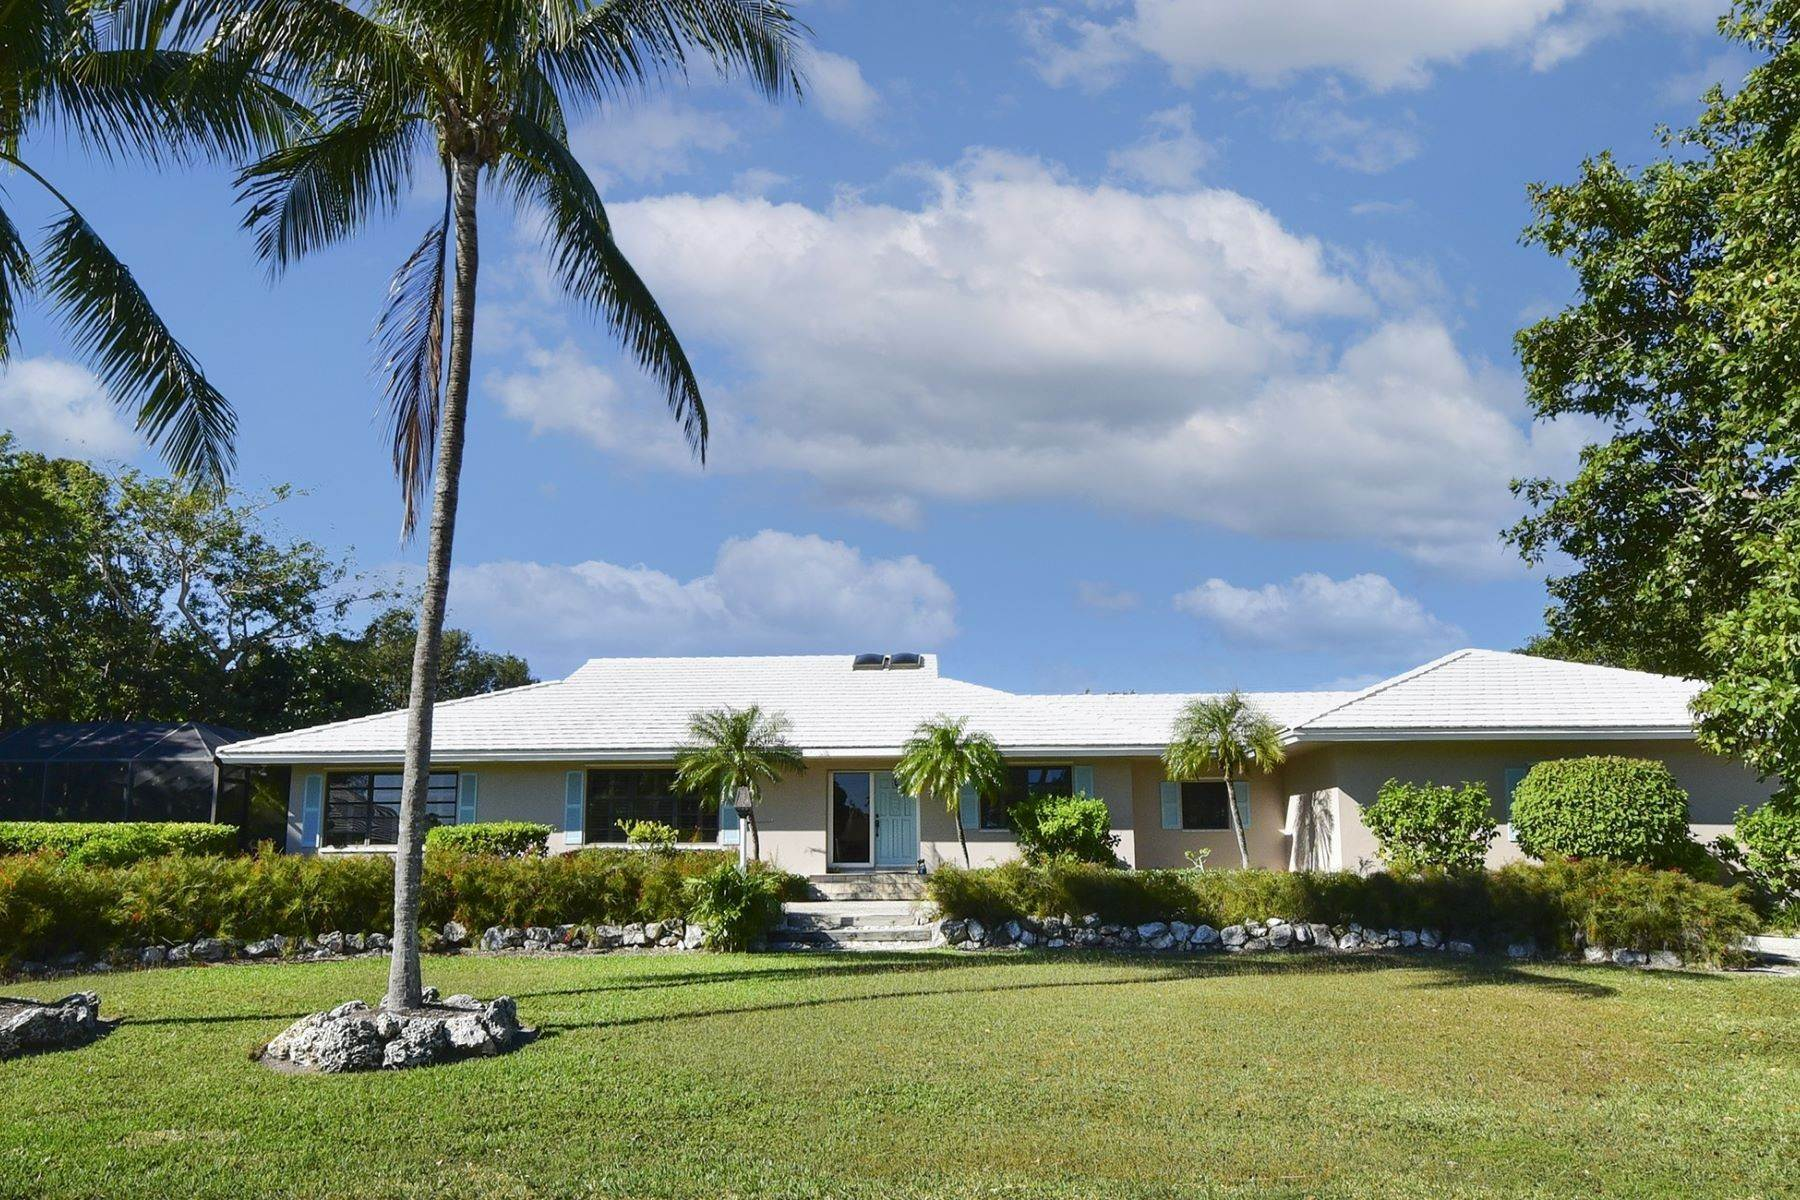 Property for Sale at 21 Country Club Road, Key Largo, FL 21 Country Club Road Key Largo, Florida 33037 United States